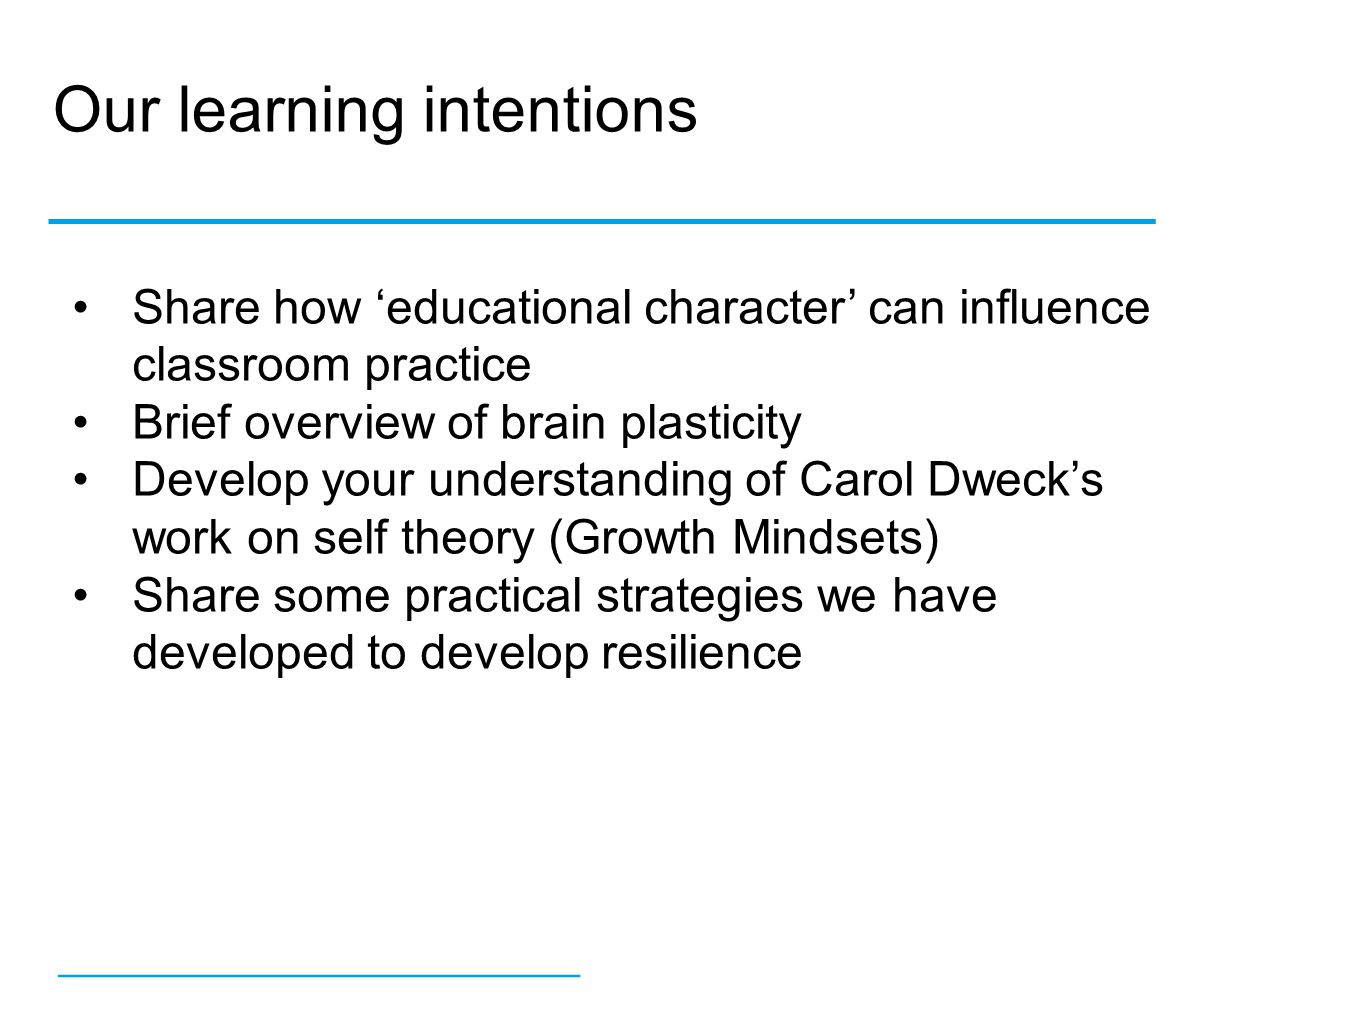 Our learning intentions __________________ Share how 'educational character' can influence classroom practice Brief overview of brain plasticity Develop your understanding of Carol Dweck's work on self theory (Growth Mindsets) Share some practical strategies we have developed to develop resilience